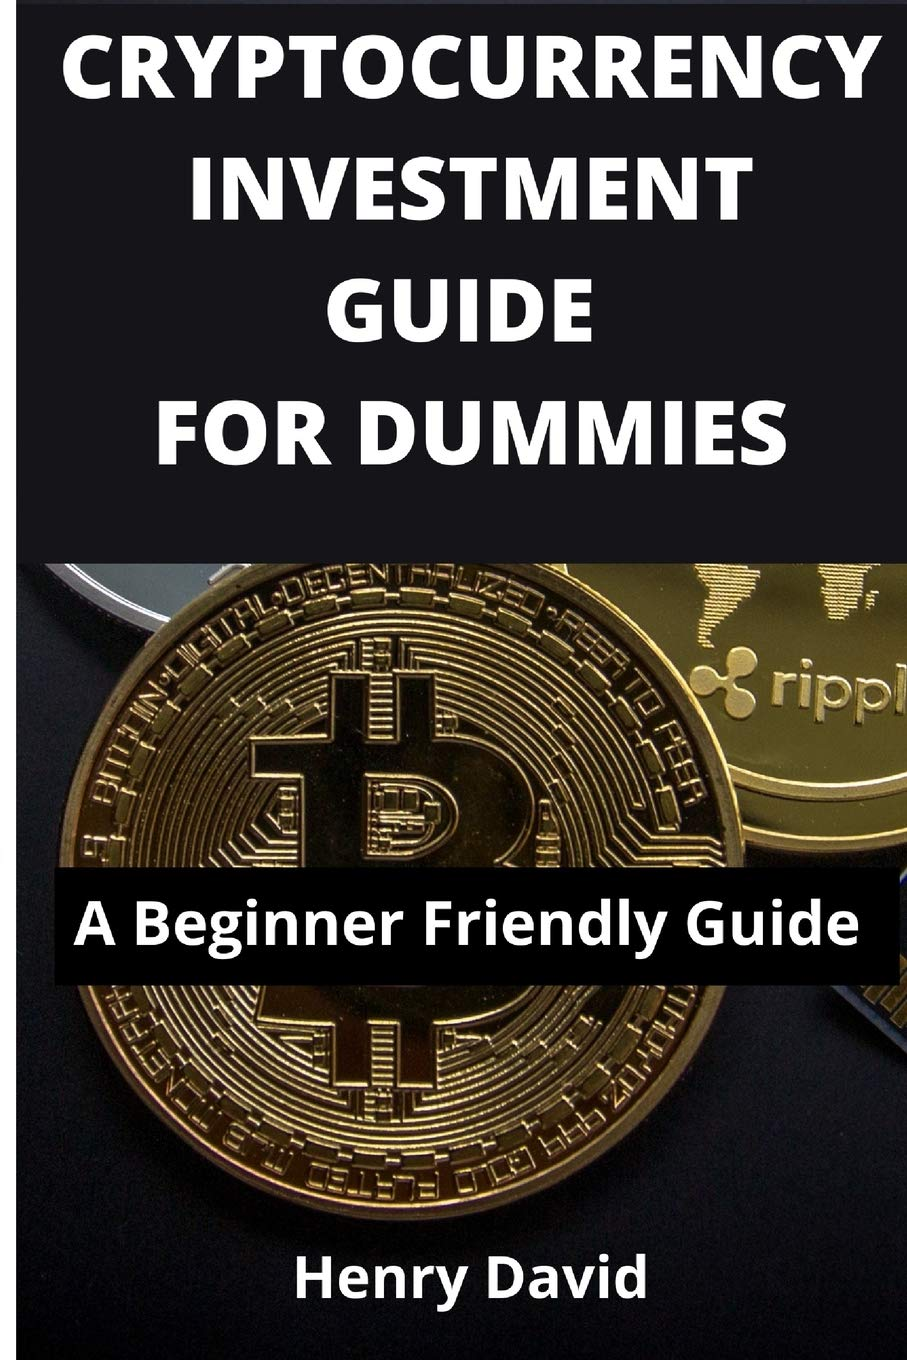 CRYPTOCURRENCY INVESTMENT GUIDE FOR DUMMIES: A Beginner Friendly Guide:  David, Henry: 9798700057608: Amazon.com: Books